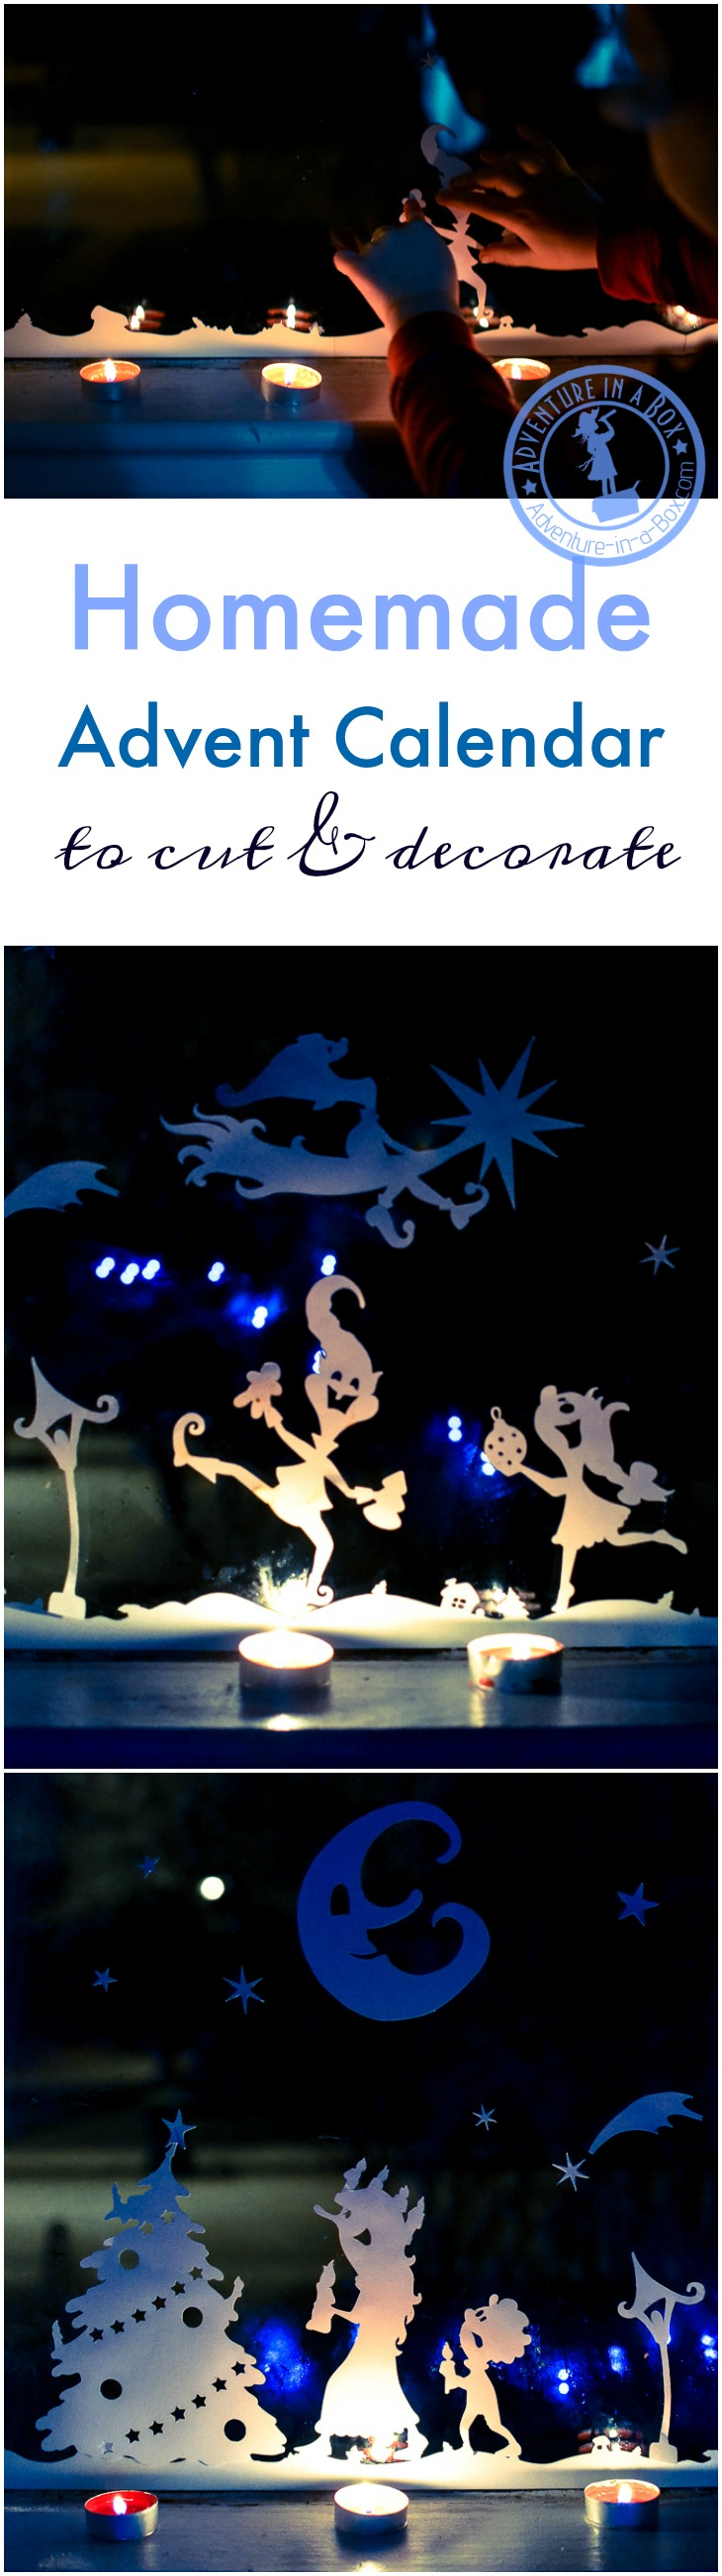 advent-calendar-with-silhouettes-cut-colour-and-create-a-story-pin